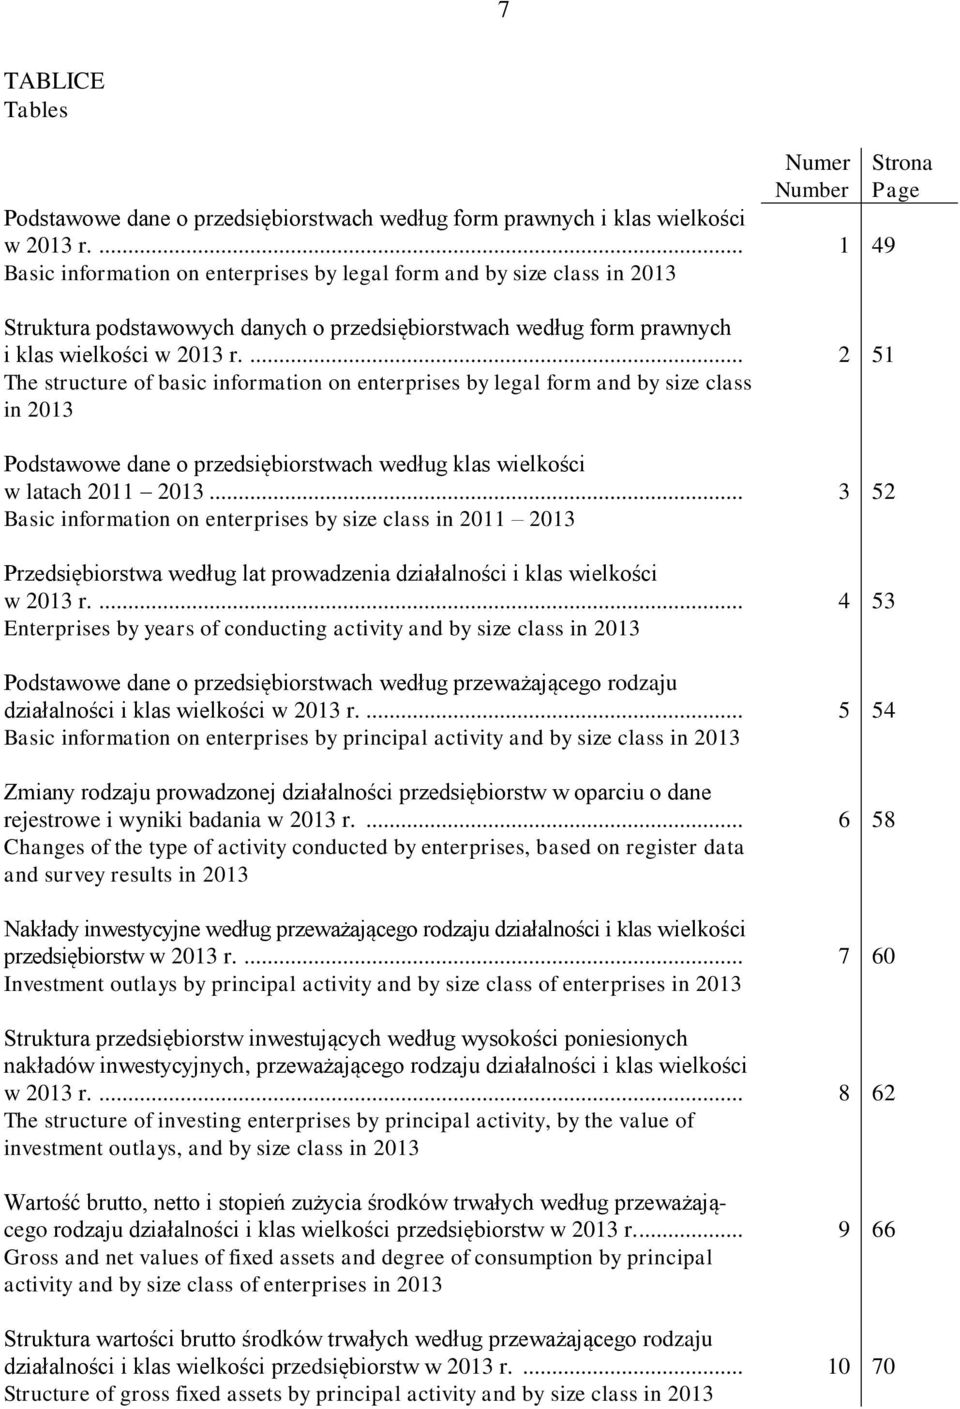 ... The structure of basic information on enterprises by legal form and by size class in 2013 Podstawowe dane o przedsiębiorstwach według klas wielkości w latach 2011 2013.